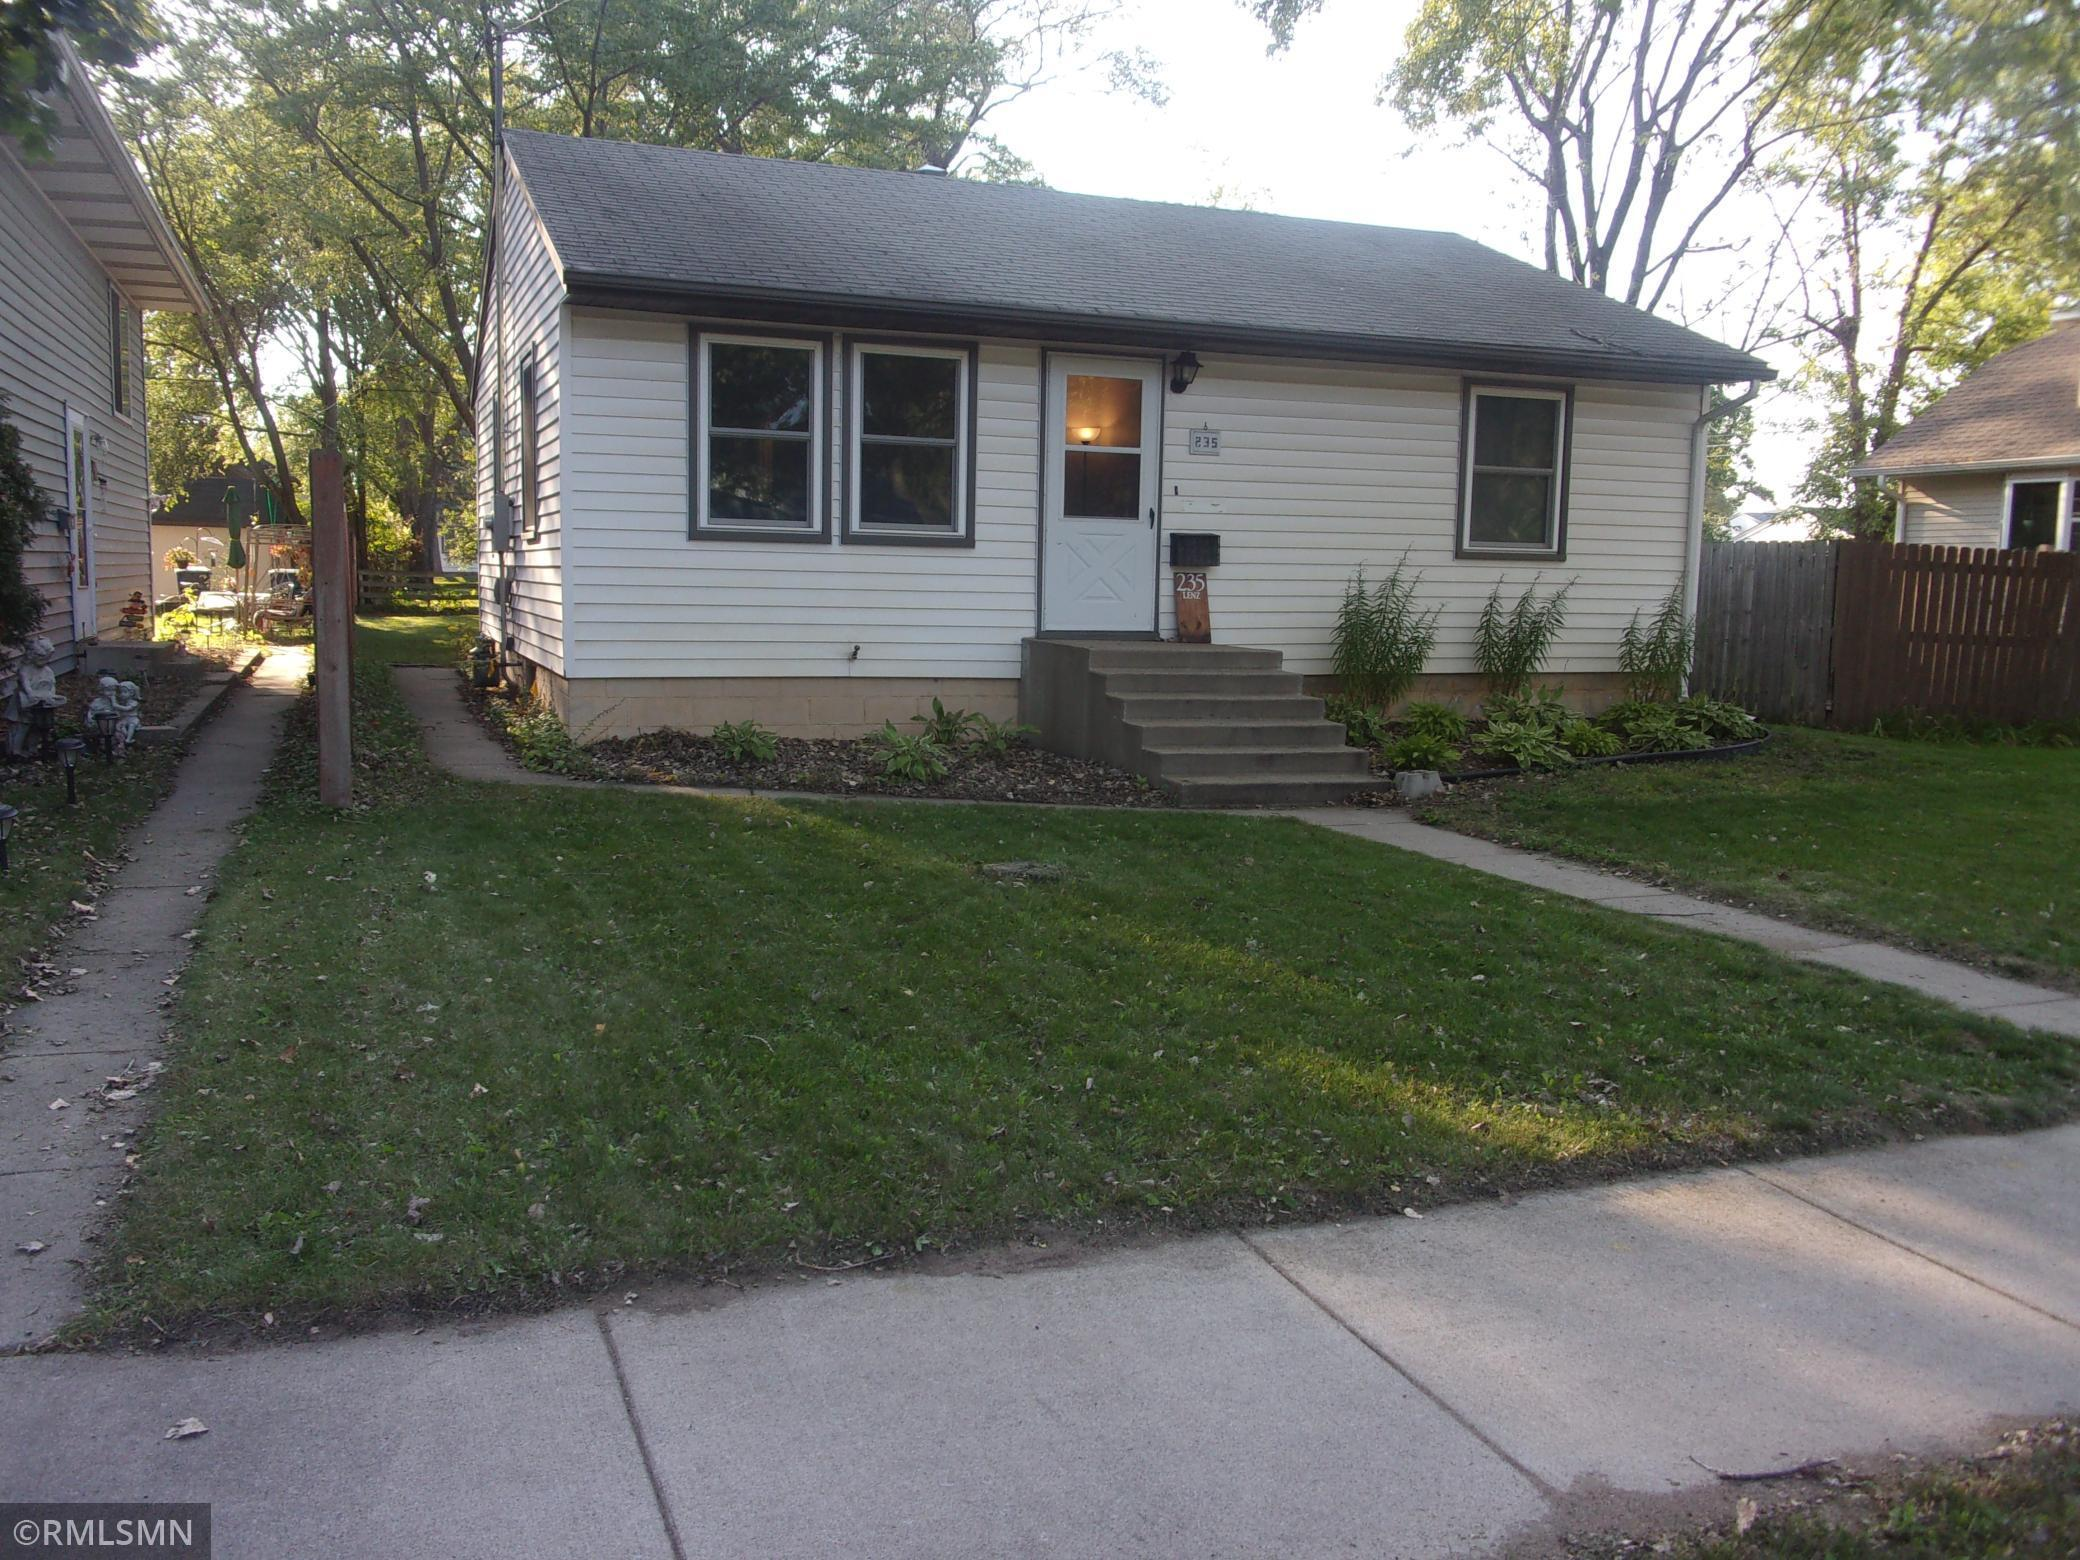 Rambler with many updates including newer vinyl siding, clad windows, egress window in basement. updated kitchen with new appliances. newer doors, siding, aluminum soffits, central air, furnace, water heater, breakers, painted basement walls. basement bath stool is in place and vanity is there but not installed.  sill room to build equity with adding a garage or finishing the basement.